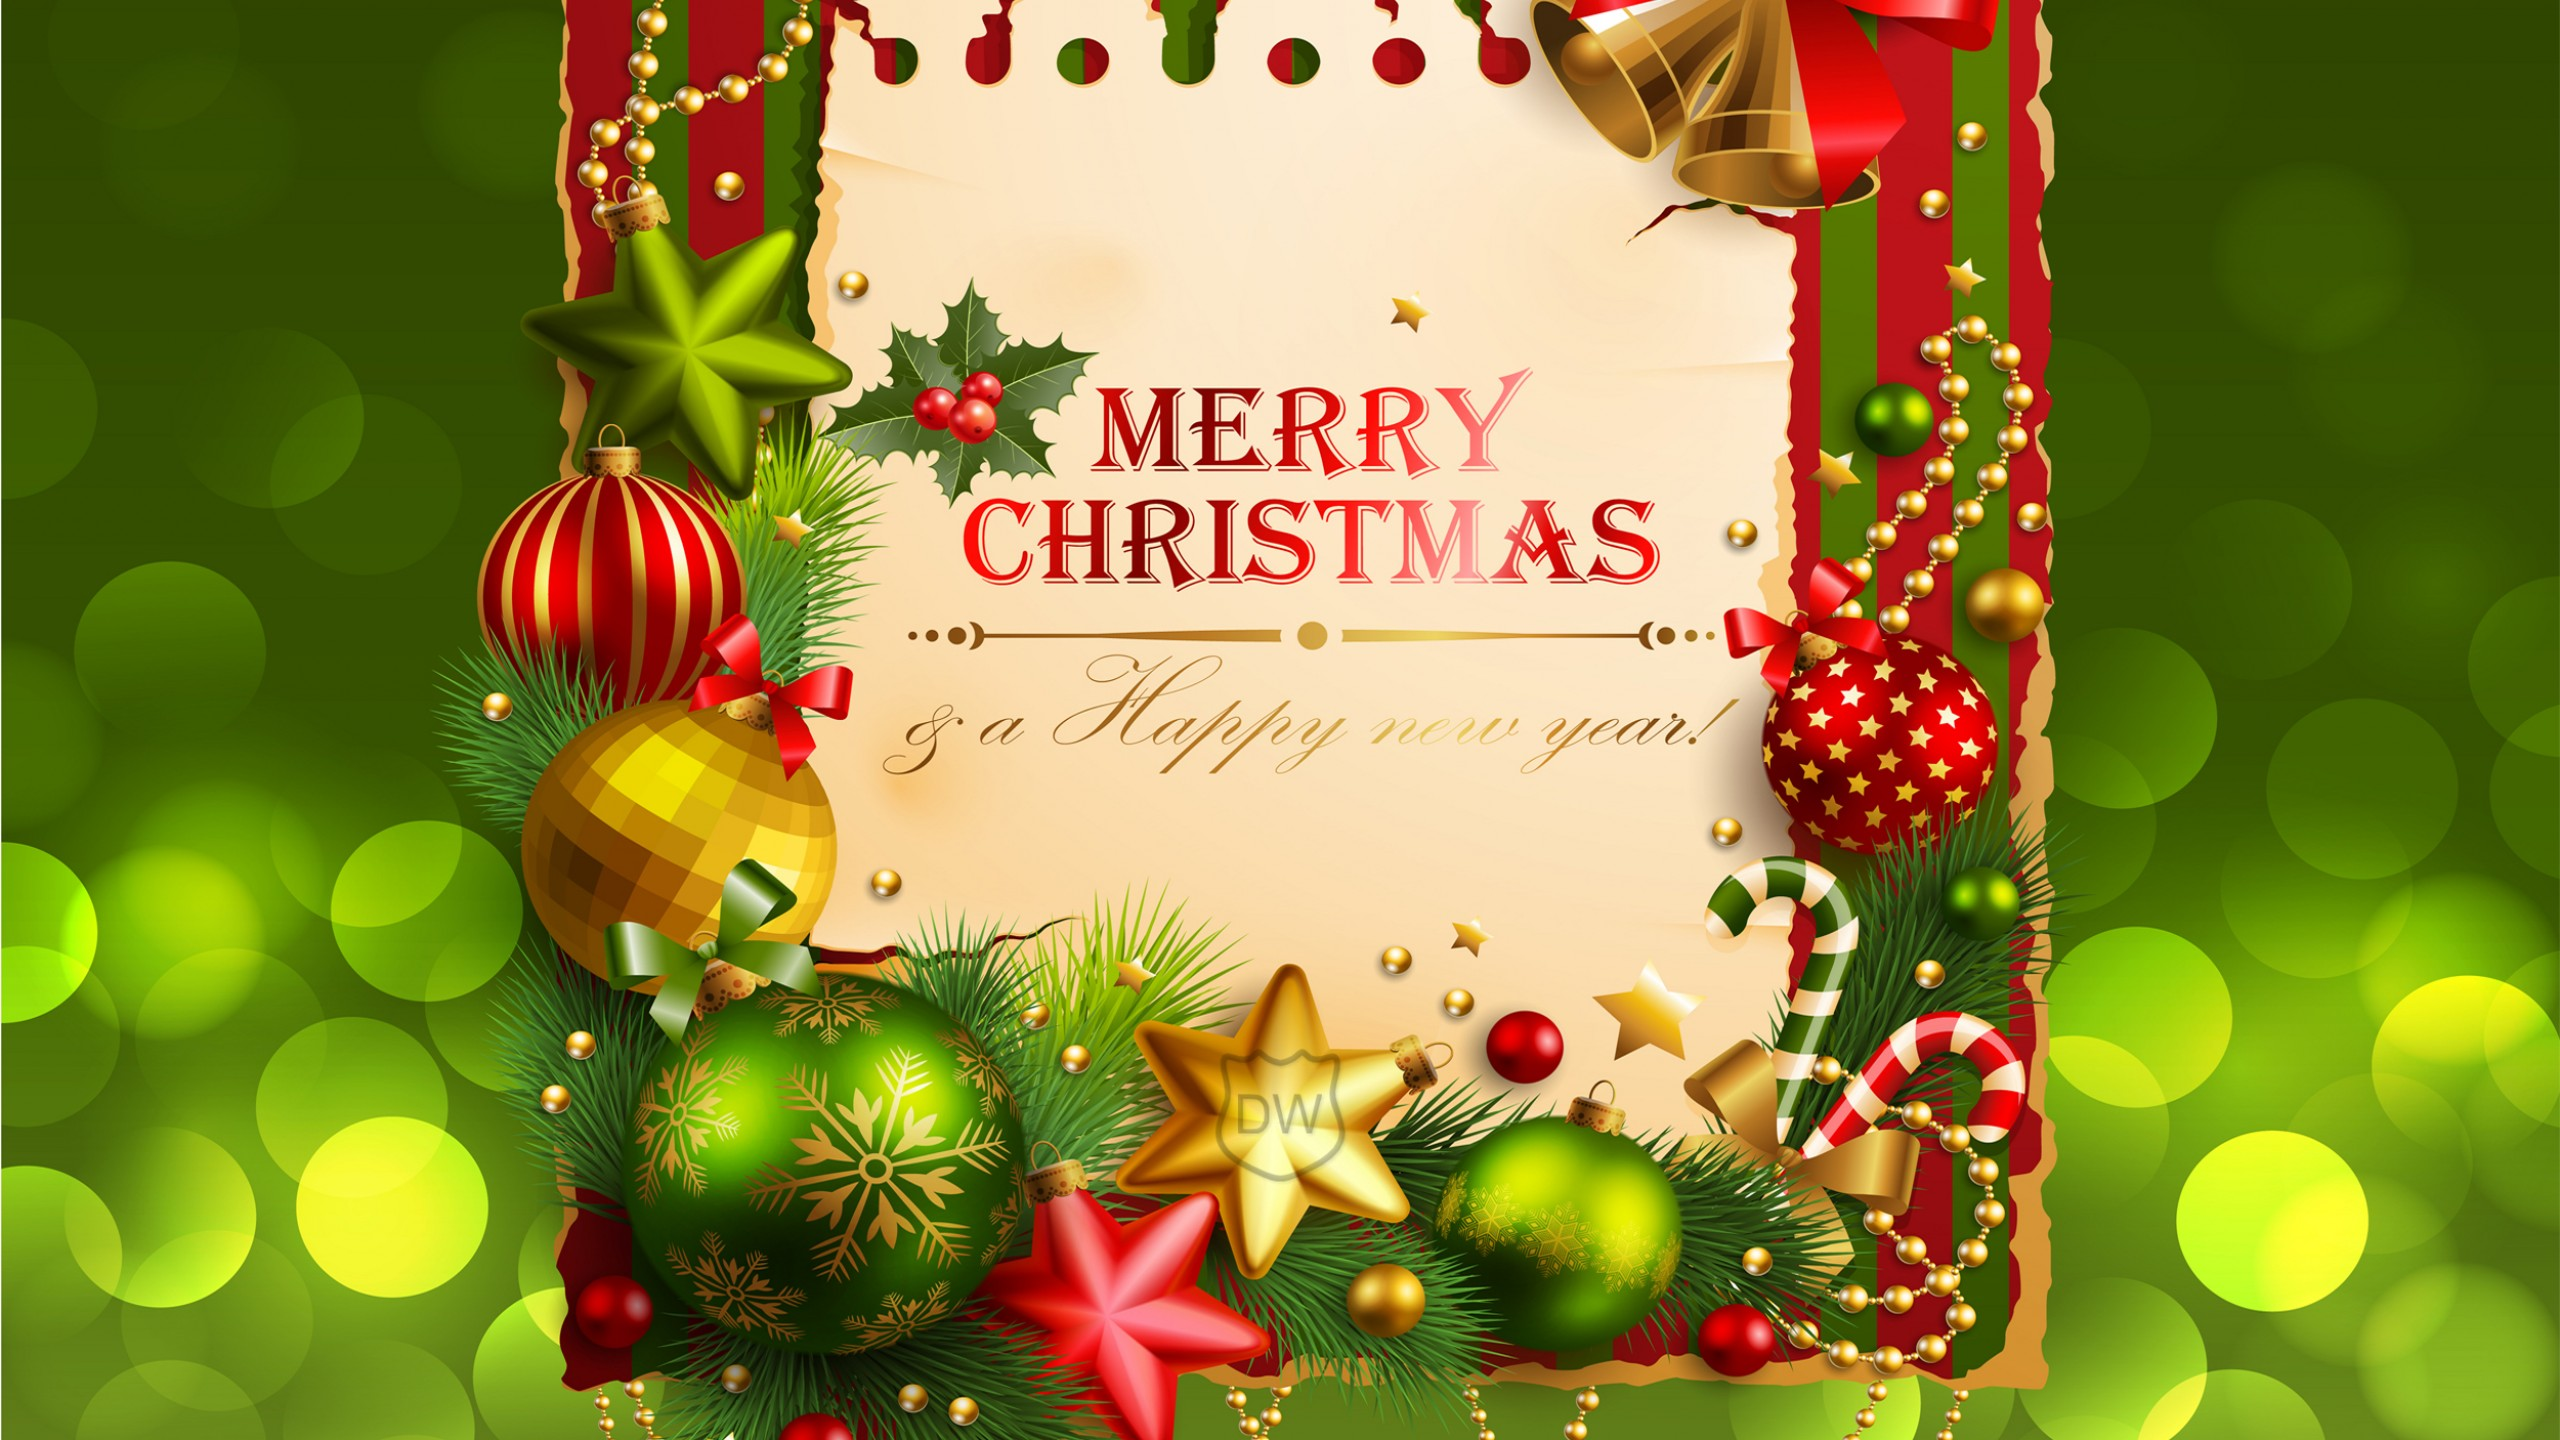 merry christmas wallpapers desktop hd - hd desktop wallpapers | 4k hd